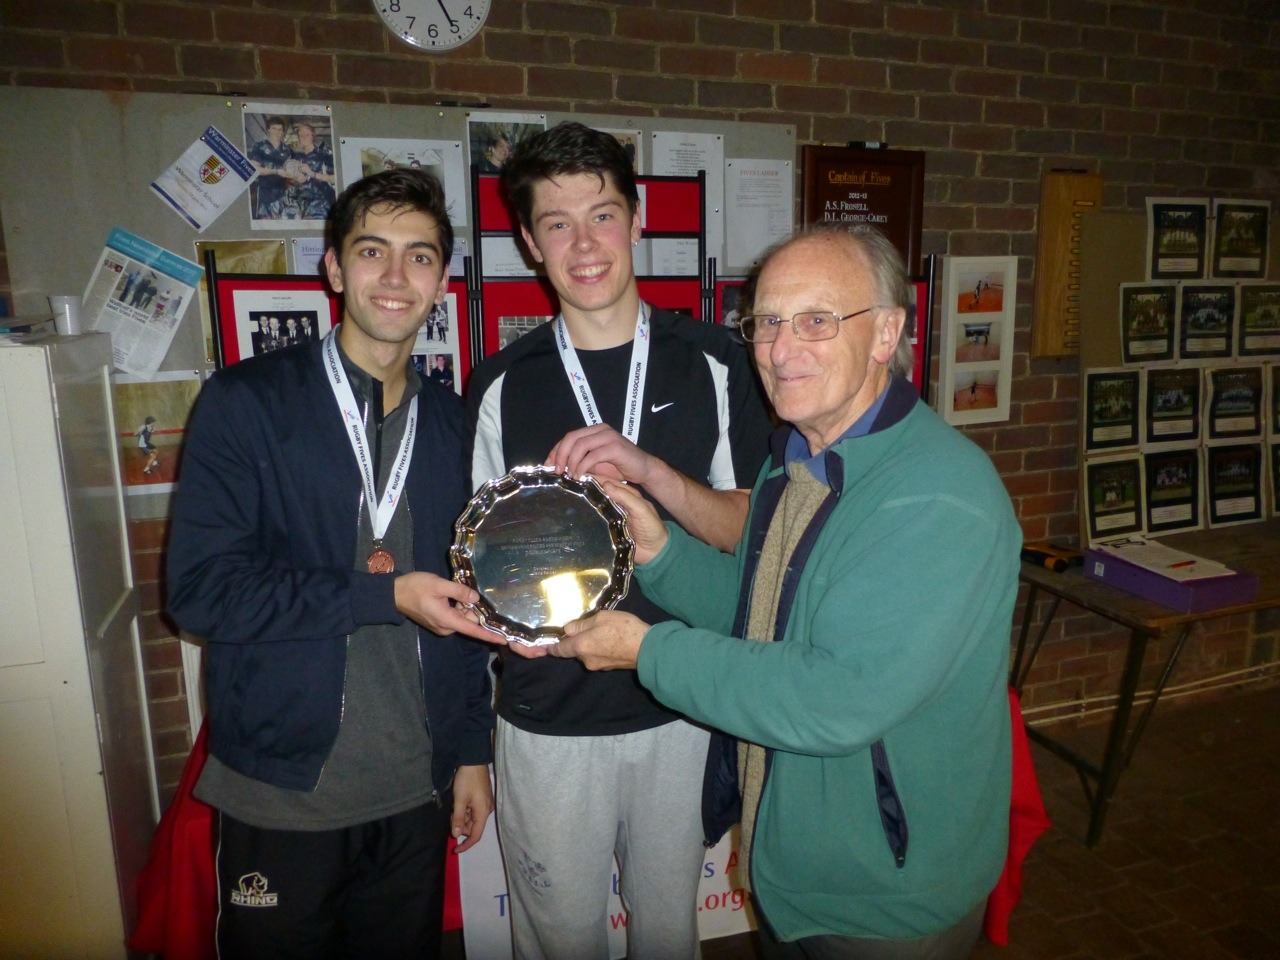 First time winners of the Doubles Plate